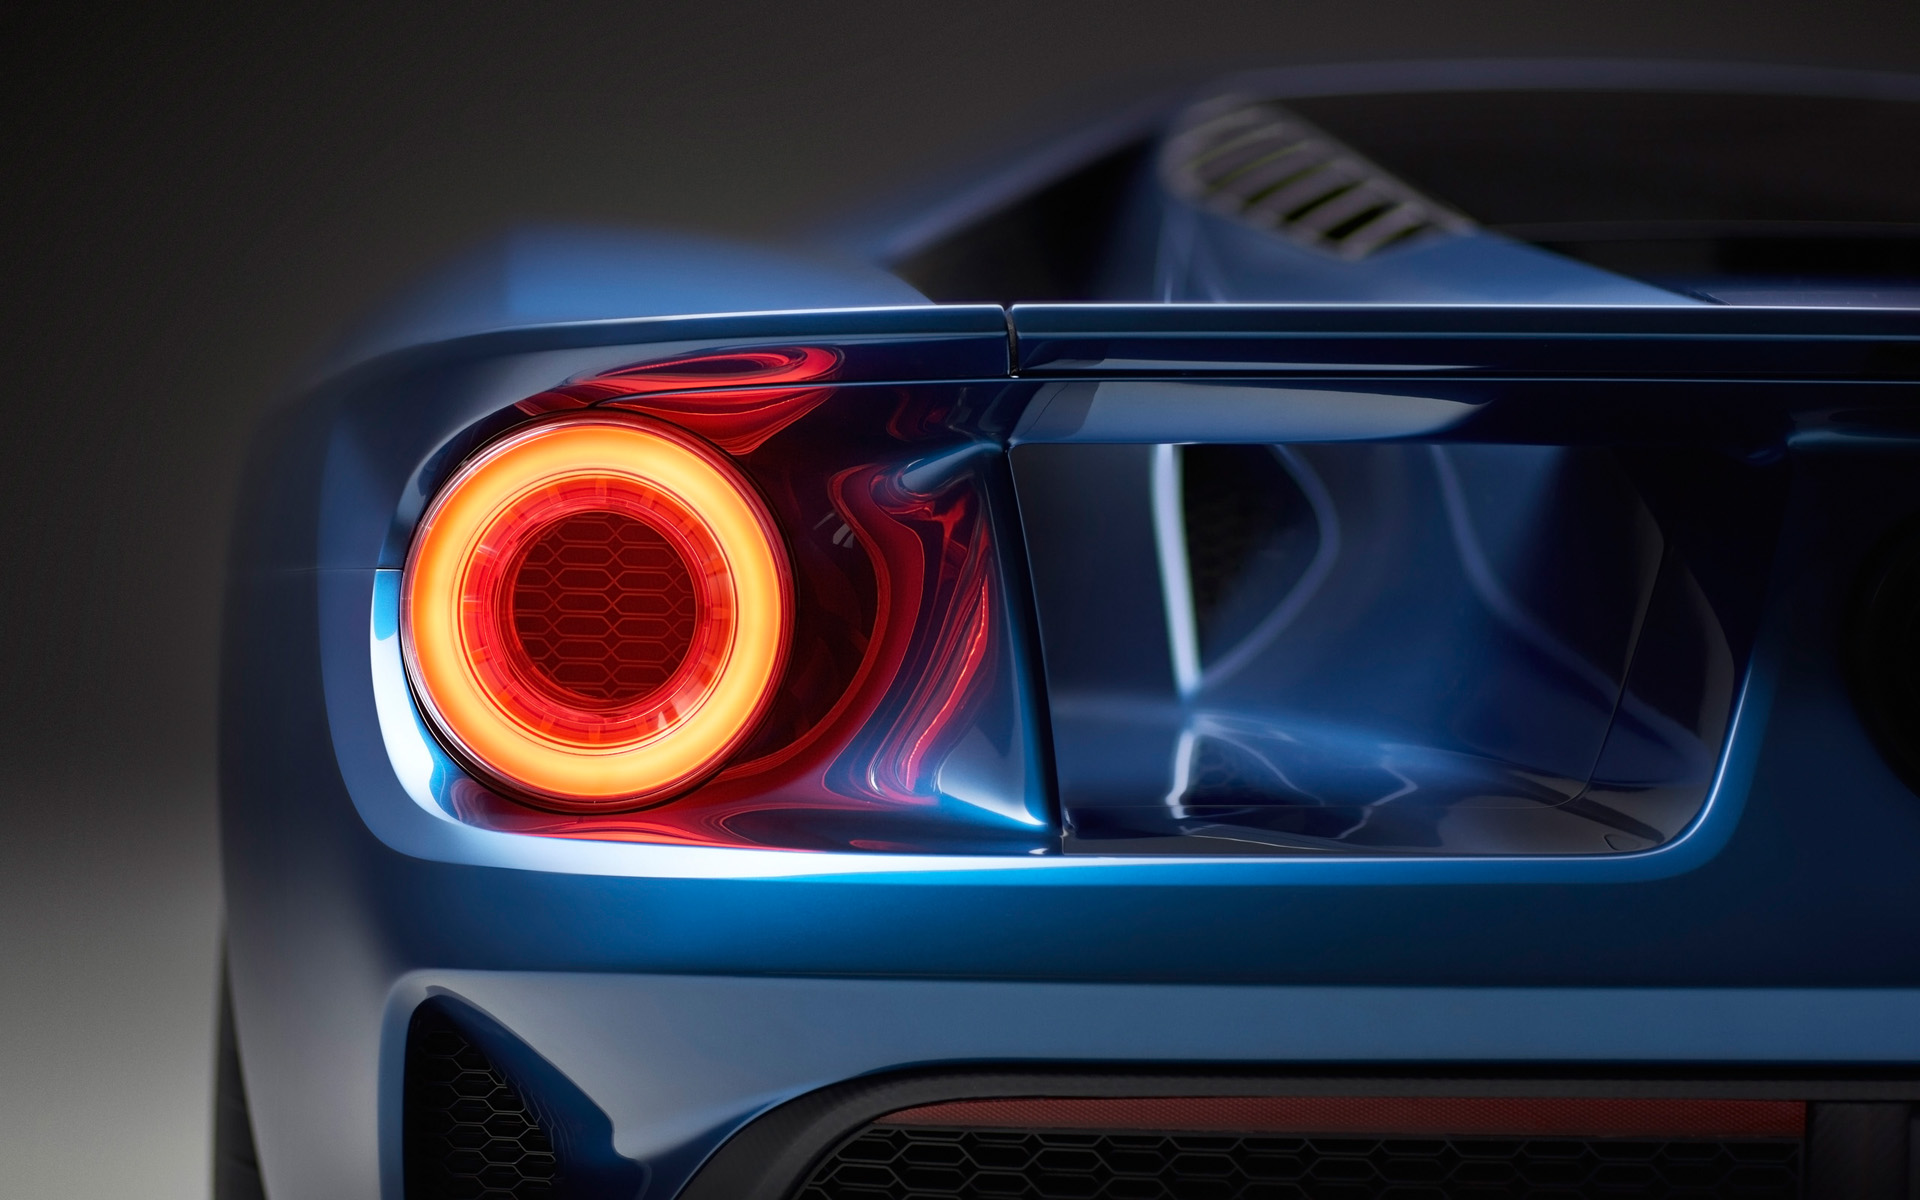 2016 Ford GT   Details   2   1920x1200   Wallpaper 1920x1200